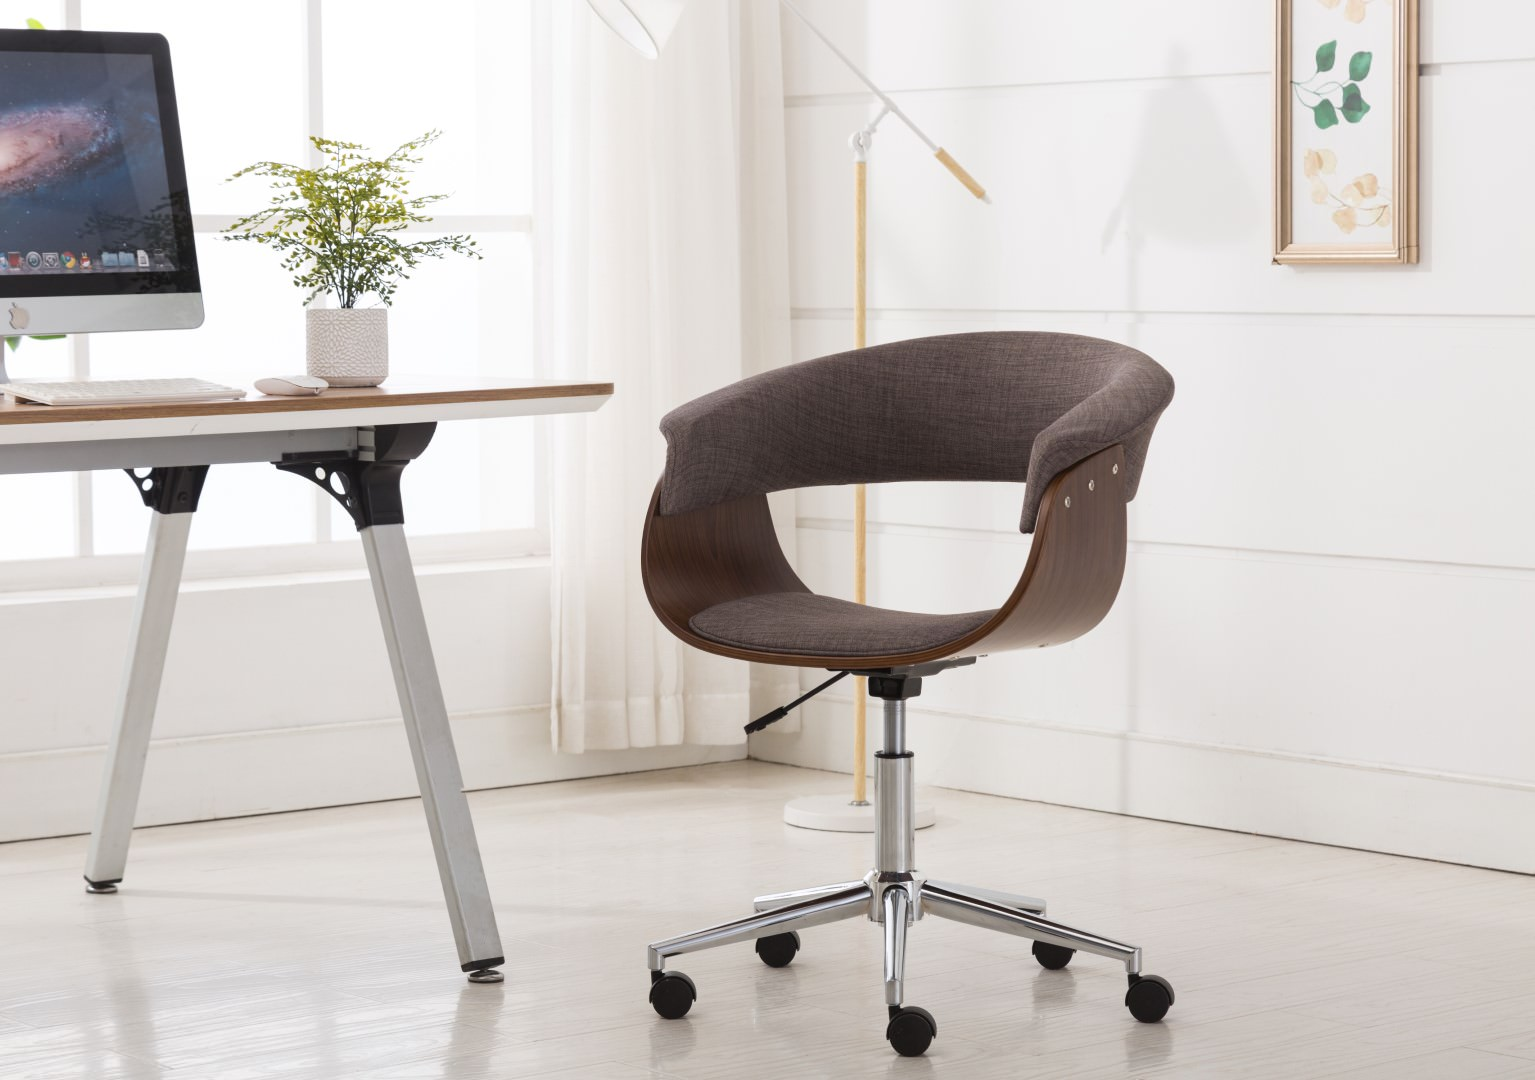 Comfy Office Chairs Porthos Home Office Chair Deluxebentwood Styleoffice Chairs With Arms Caster Wheels 360 Degree Swivel Height Adjustable Comfy Hemp